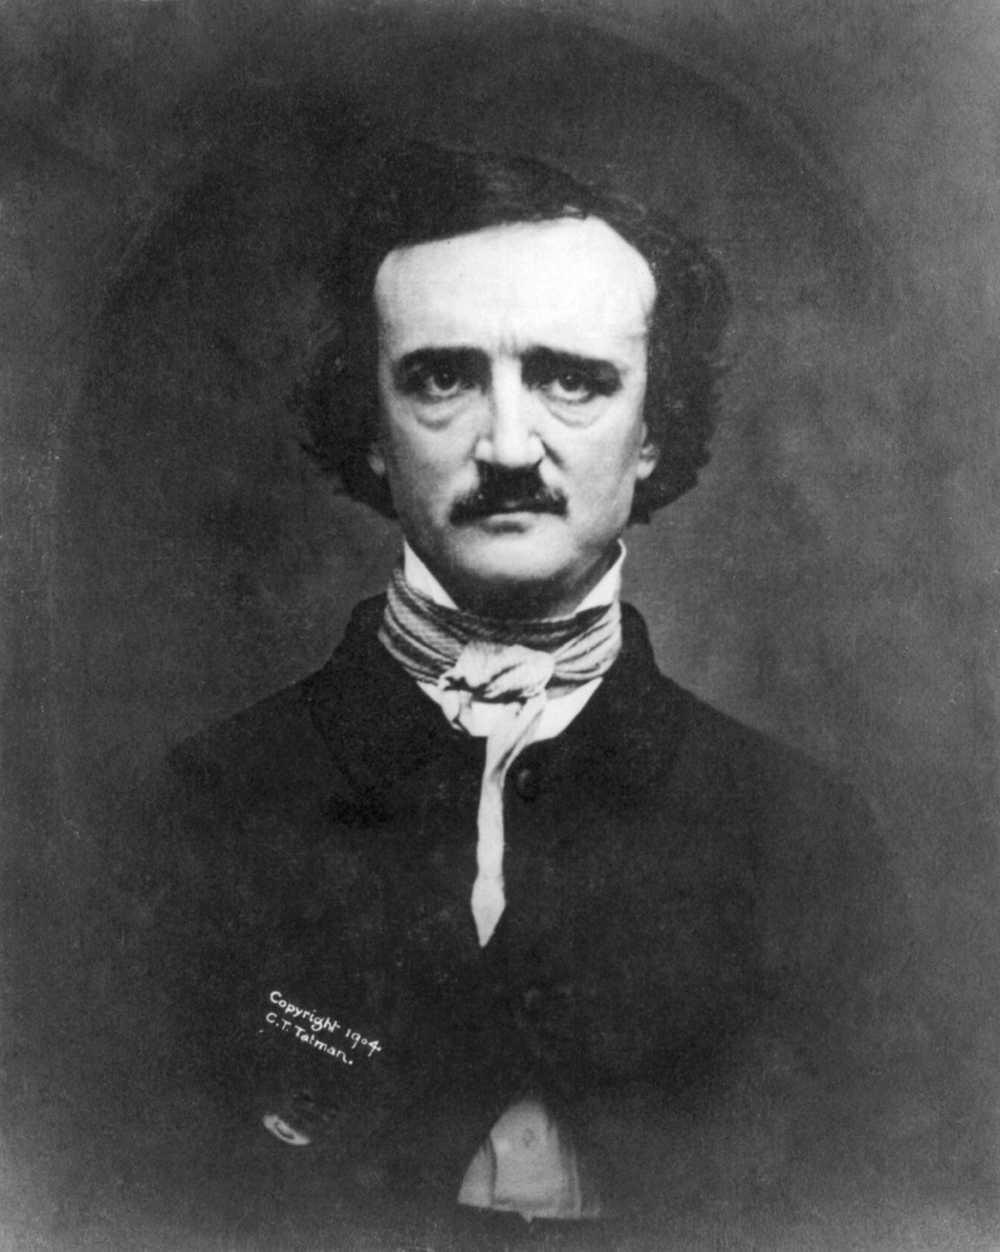 Masters of the Pen: An Evening with Edgar Allan Poe directed by Gwen Jones Thursday, October 30 @ 7:30 Michael Nutt Mainstage, WICA Tickets: $10